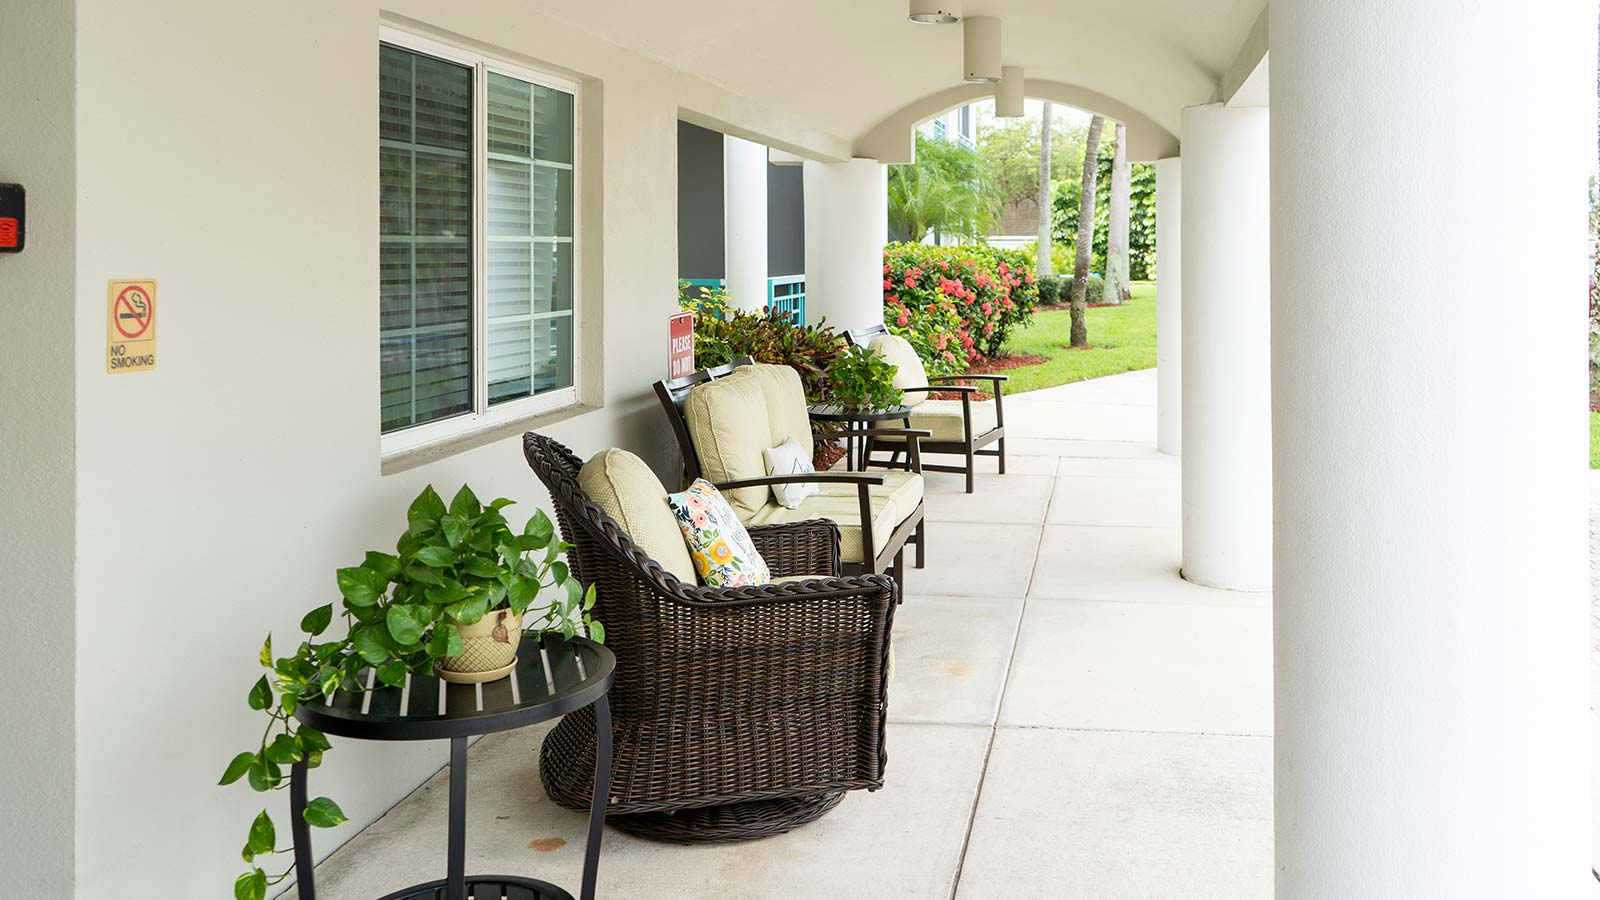 Outdoor patio at Heron Club assisted living and memory care in Sarasota Florida